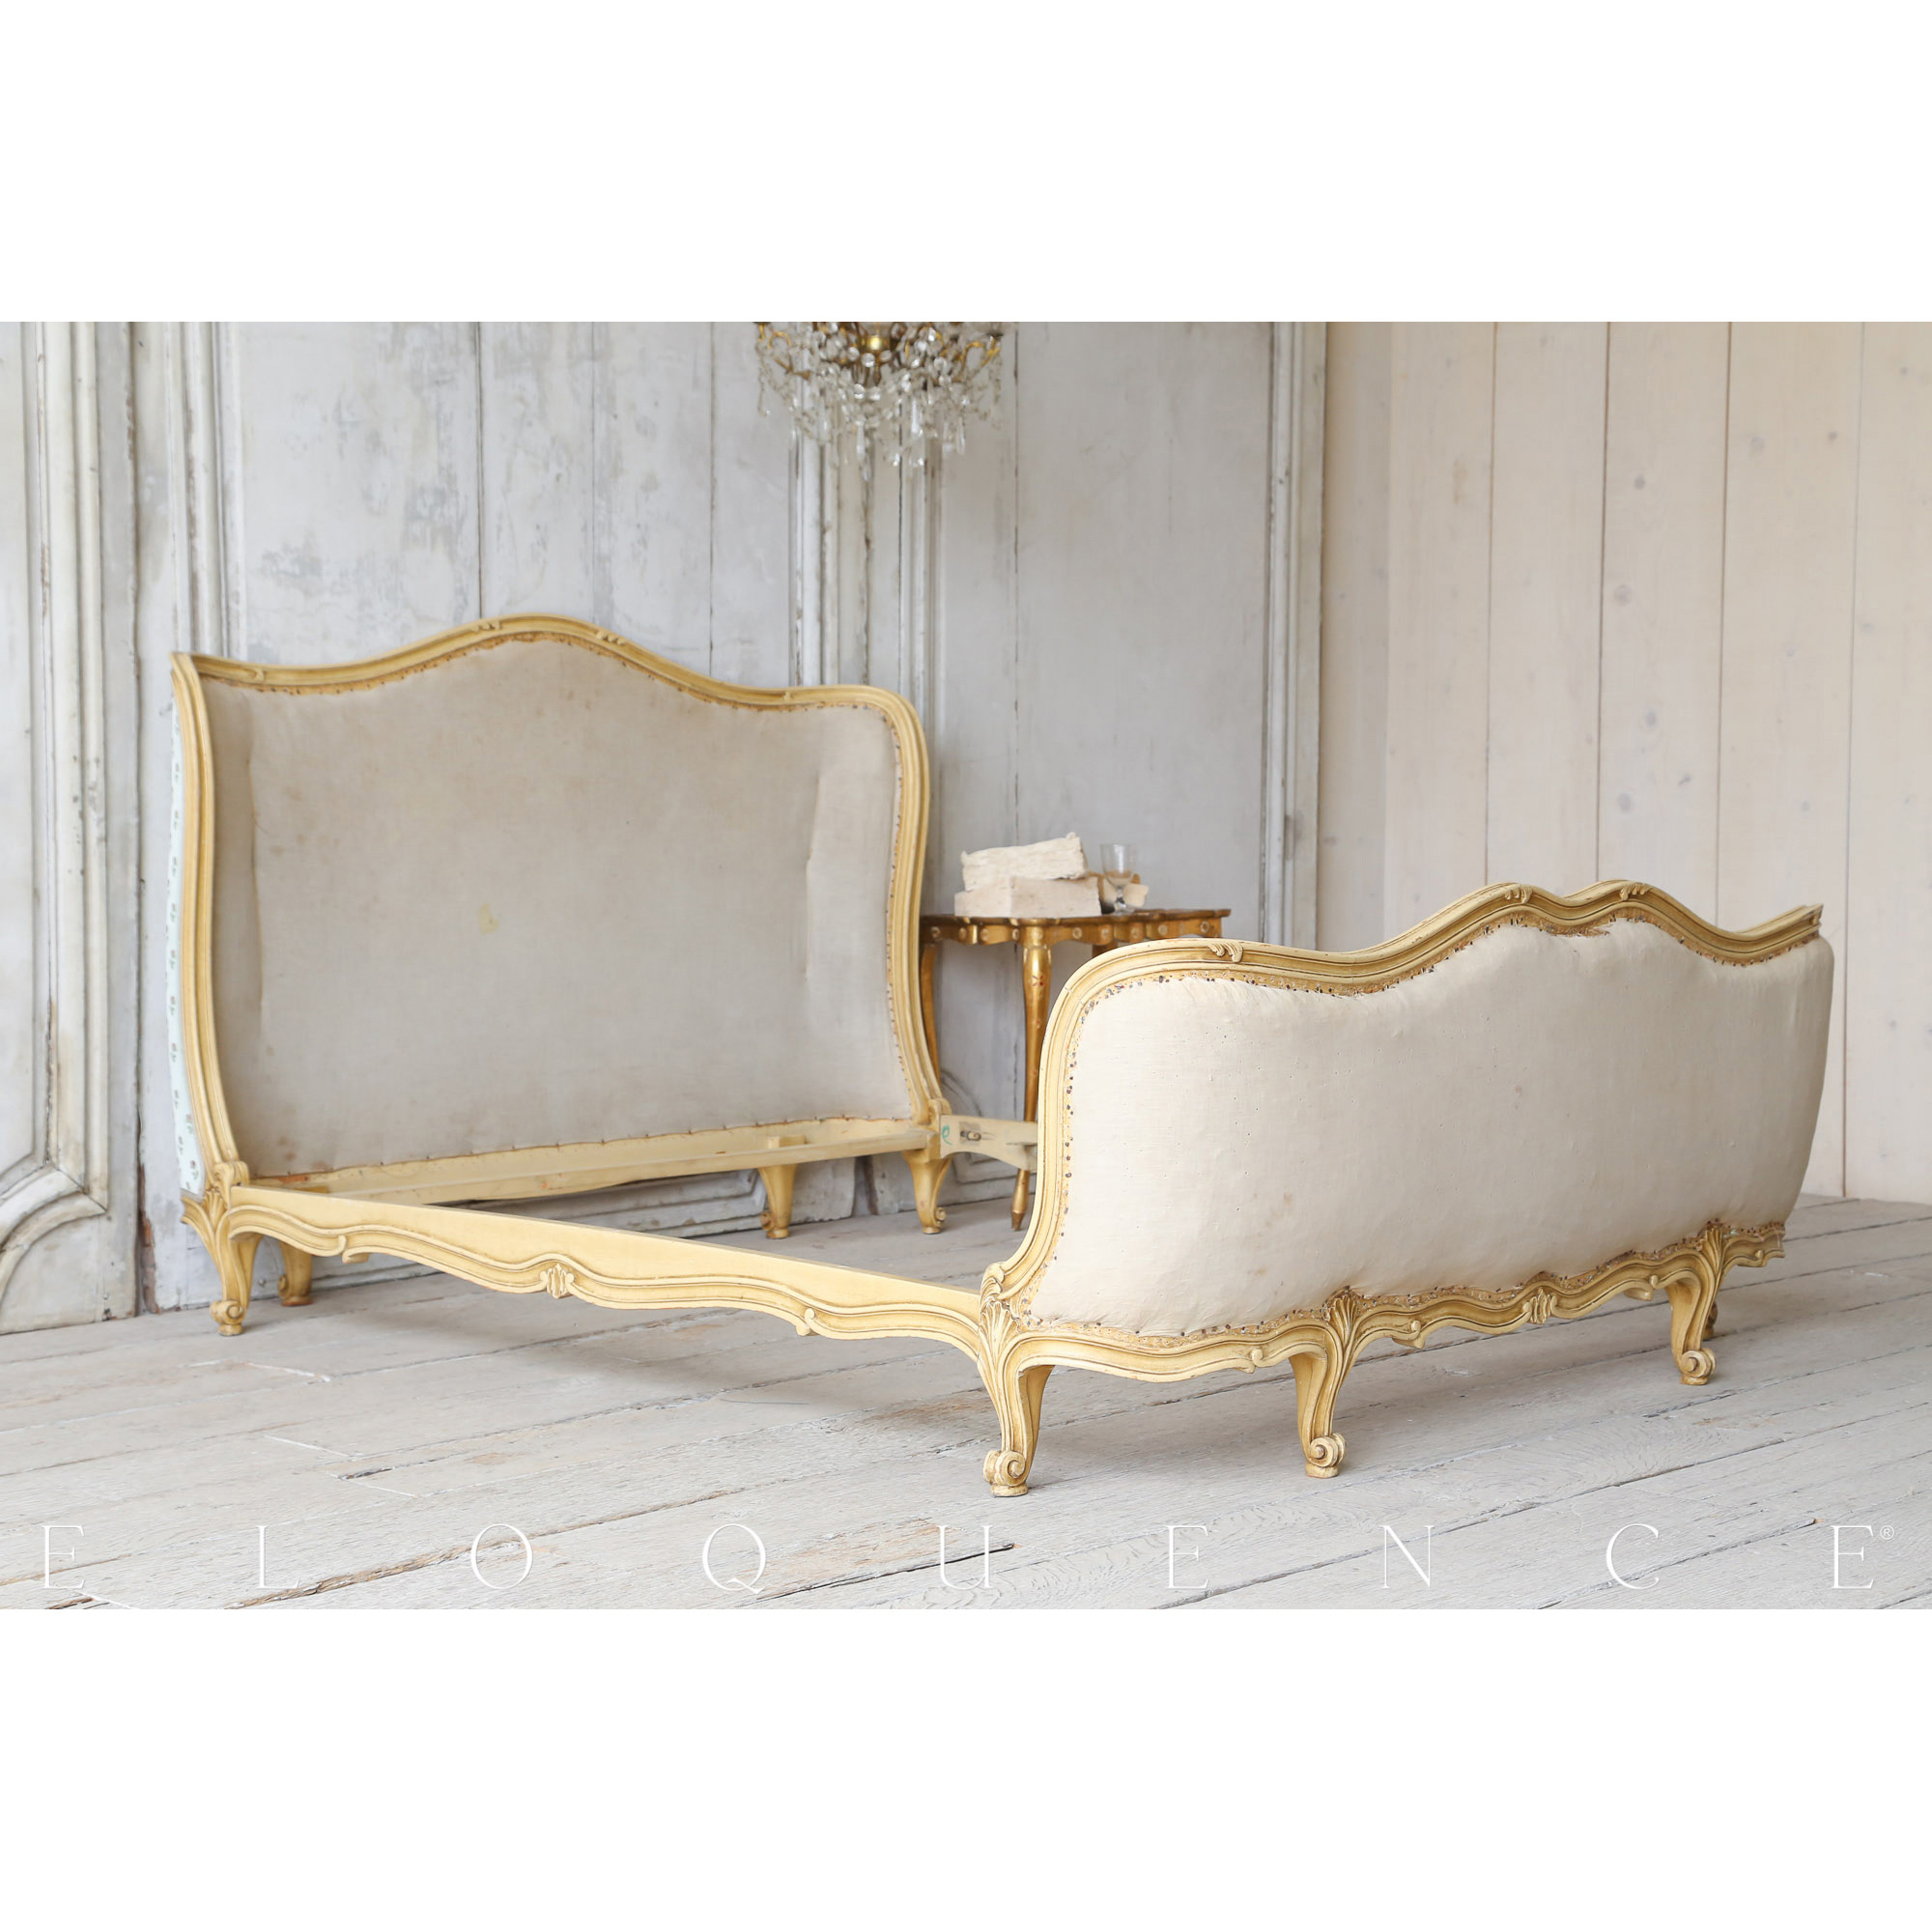 Eloquence® Antique French Cream Enamel Finish Wood Bed 1910